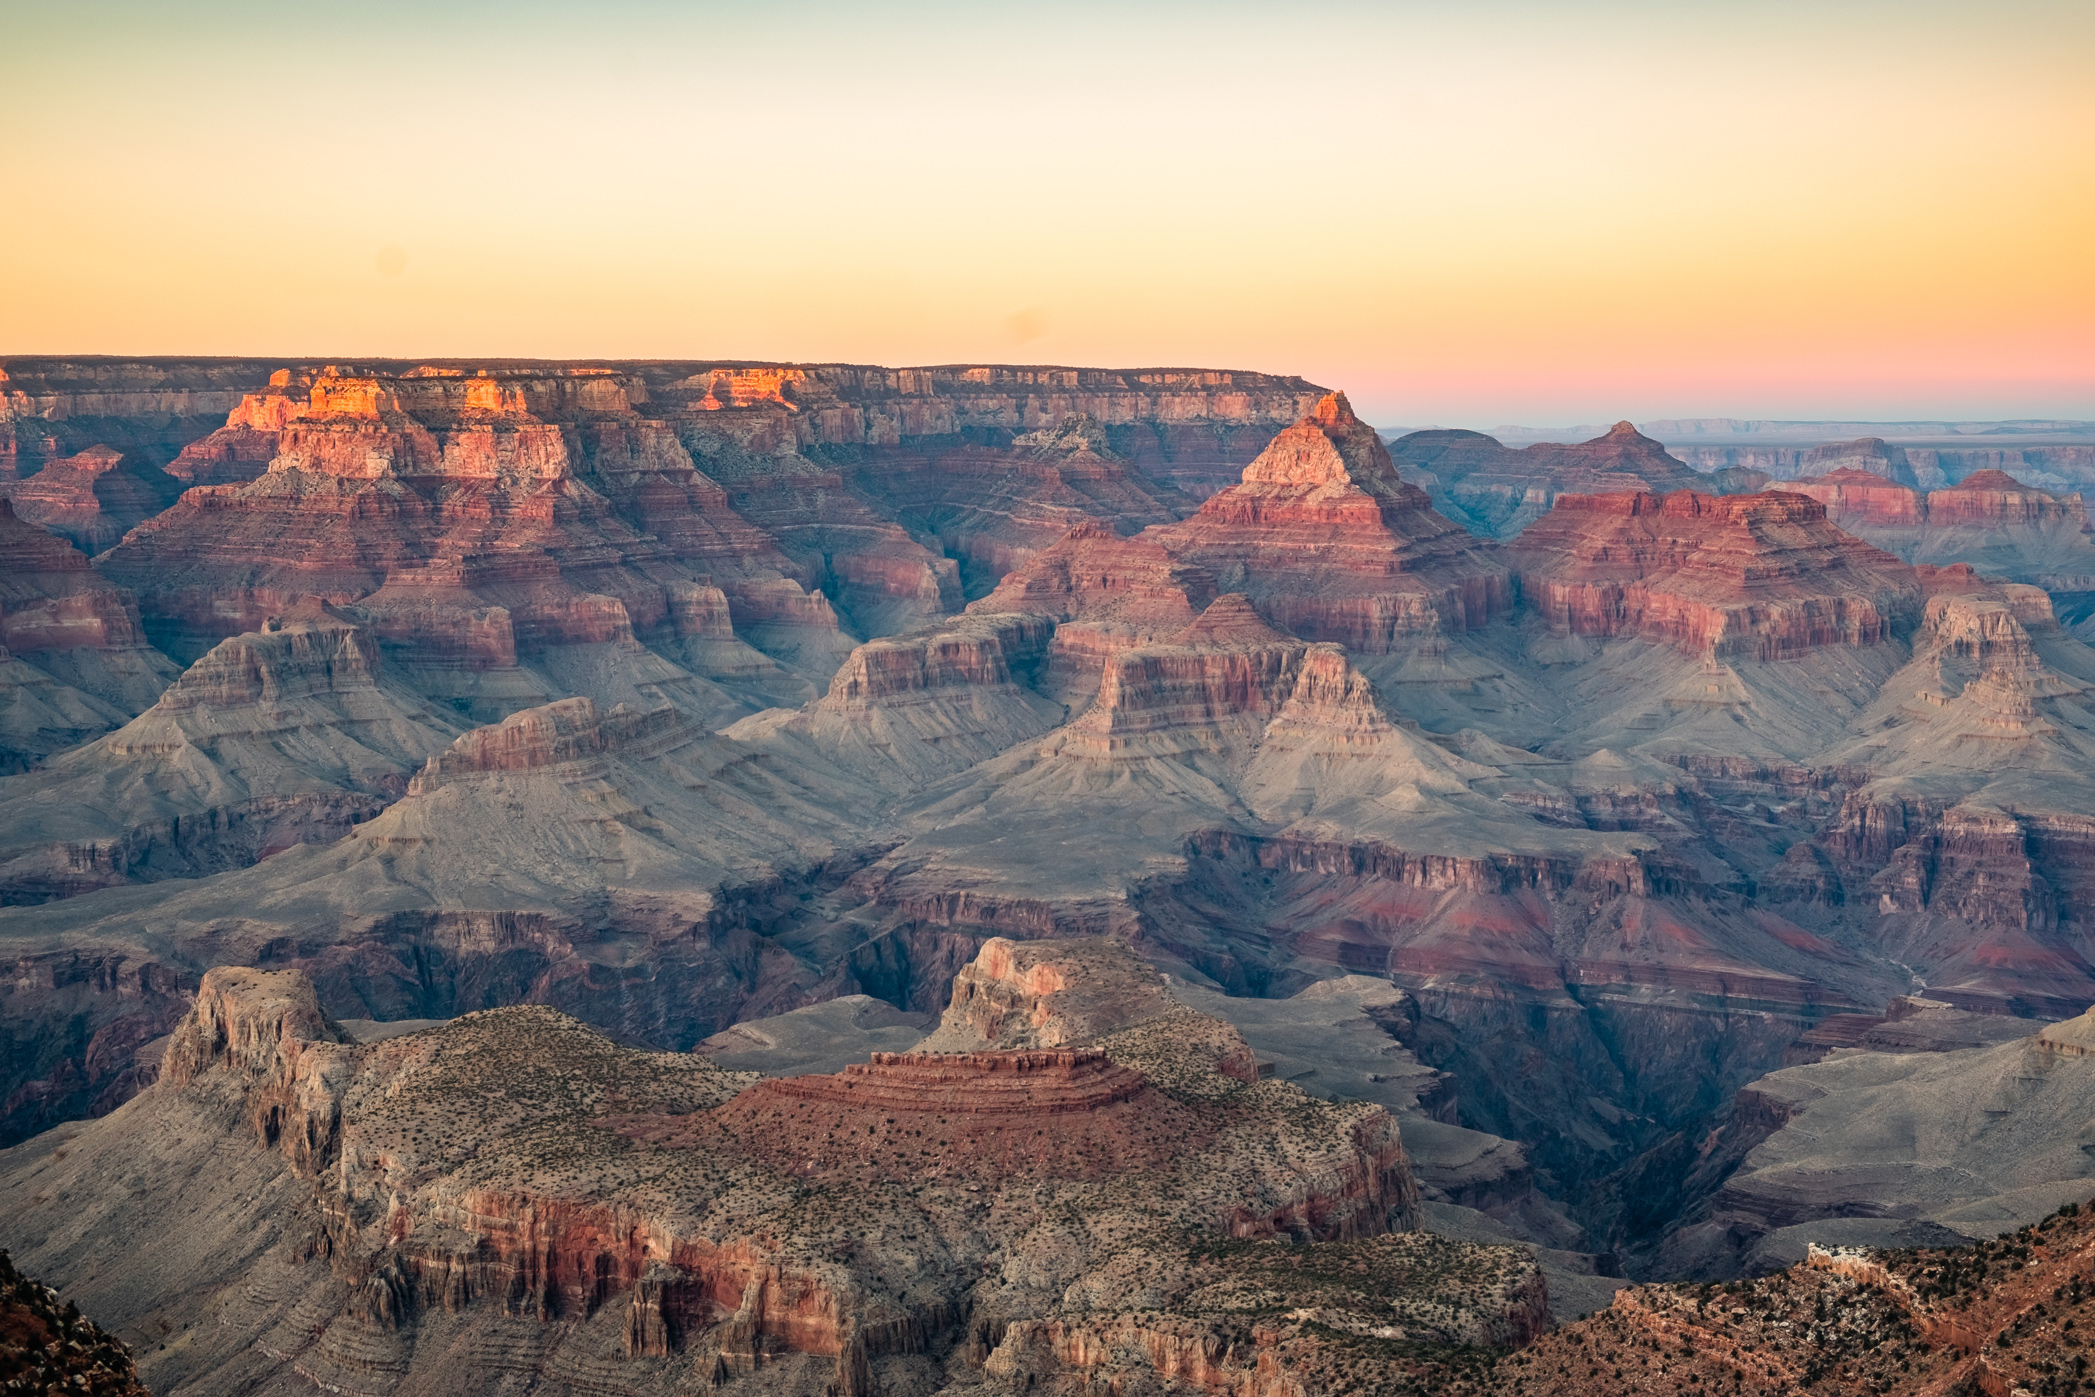 Sunrise and sunset are two of the best times to take in the Grand Canyon.